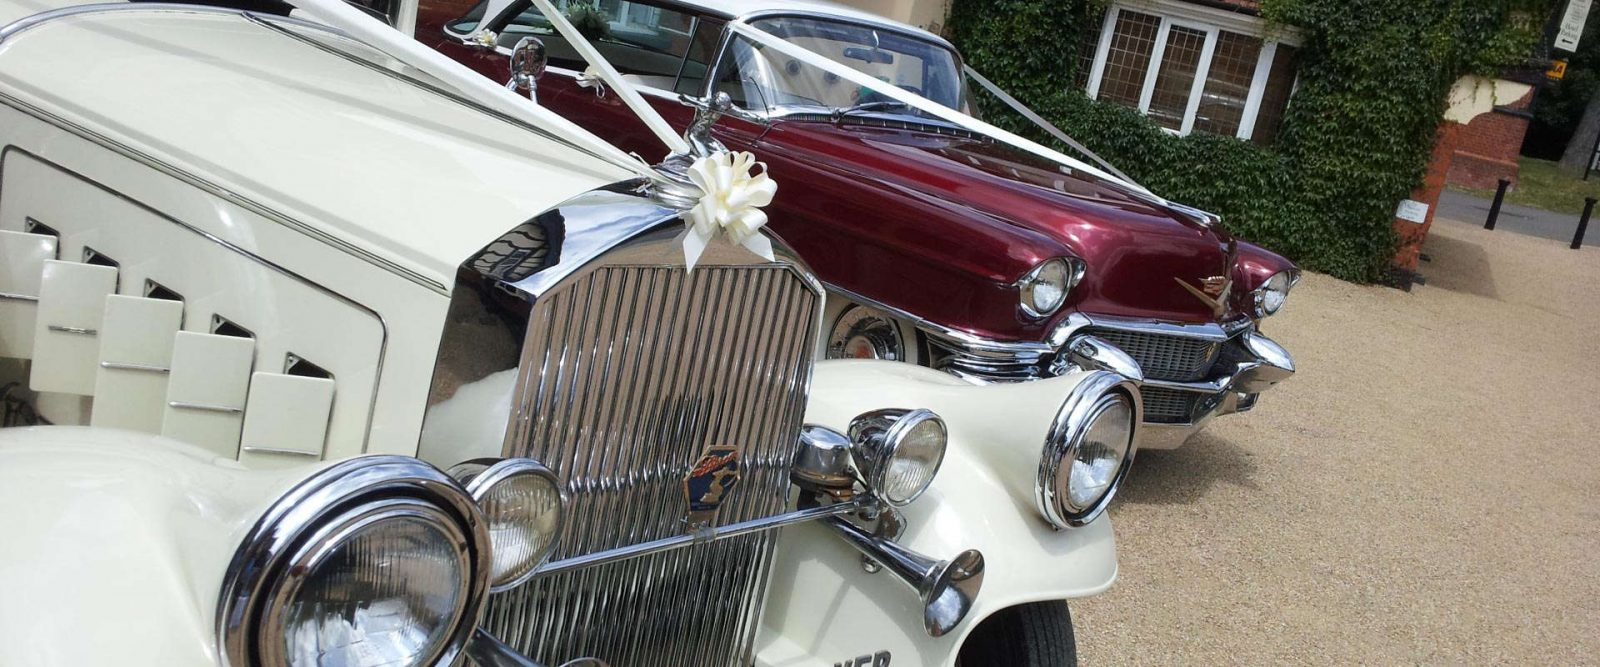 Arrow Vintage Wedding Cars Hire